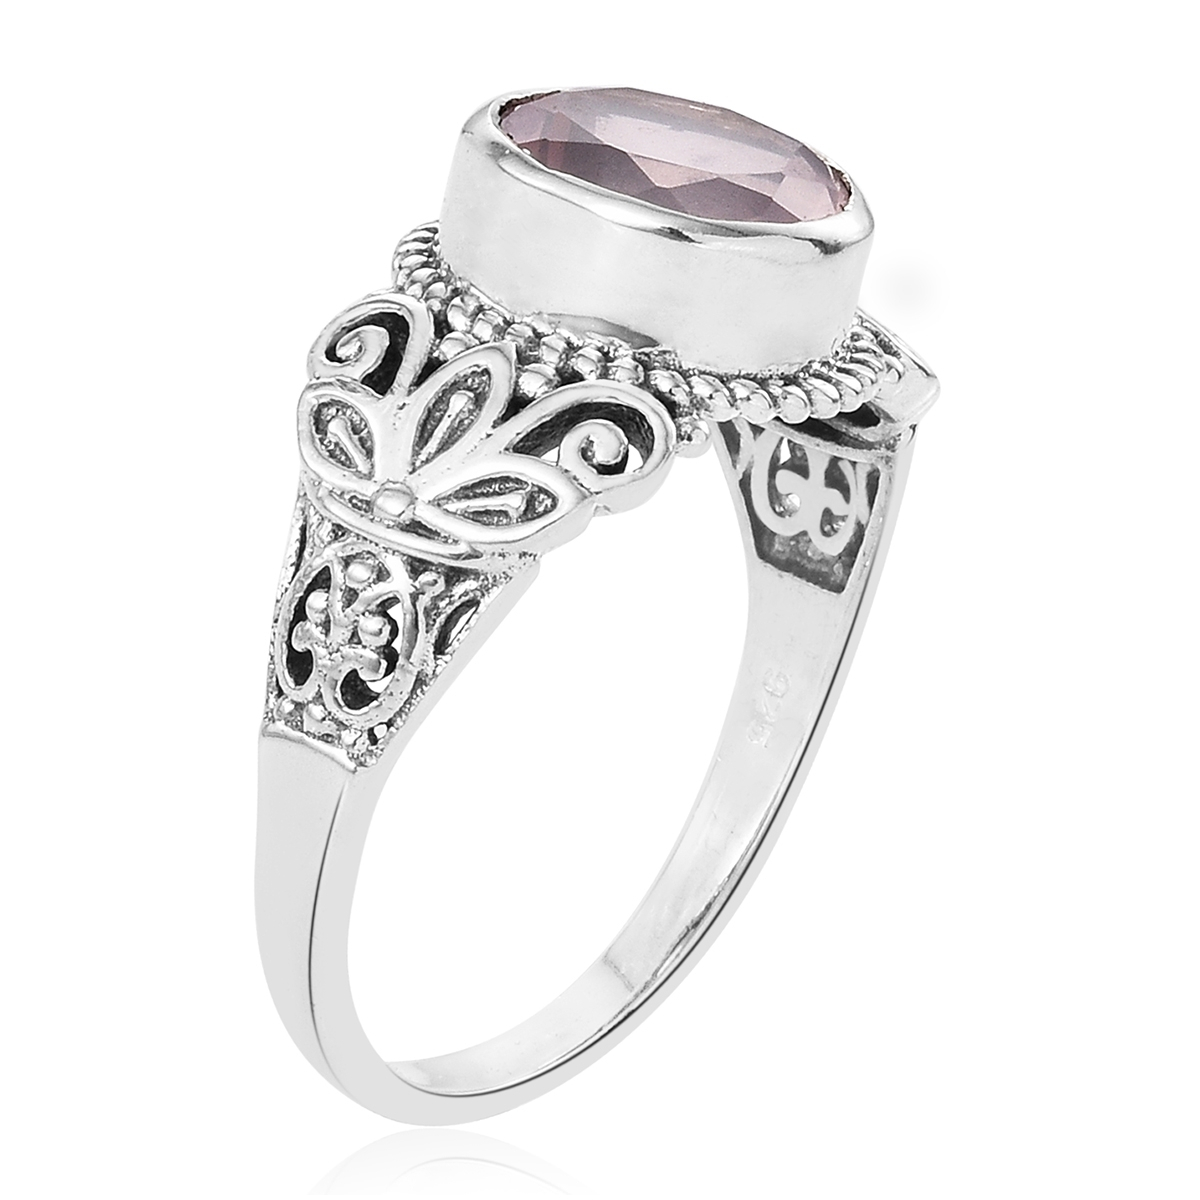 Galilea Rose Quartz Sterling Silver Openwork Butterfly Ring (size 8.0) Tgw 2.58 Cts (View 14 of 25)